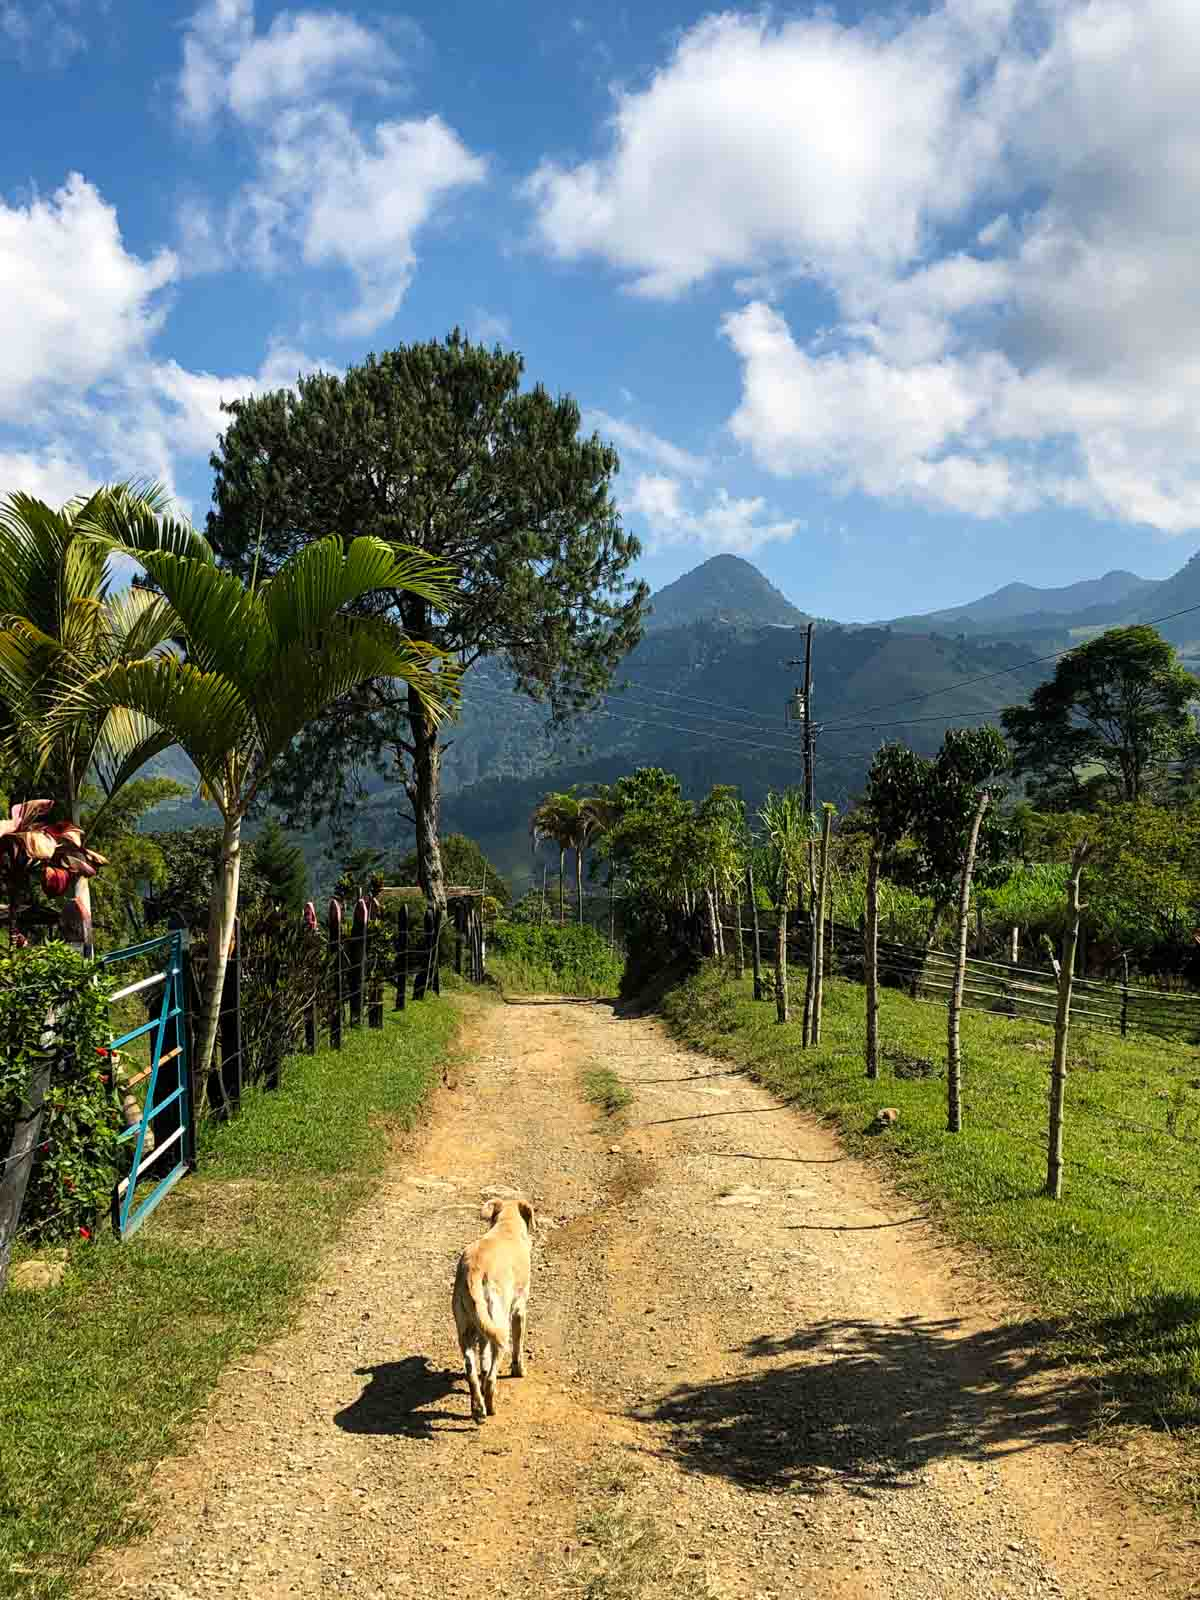 A dog in Jardin, Colombia.